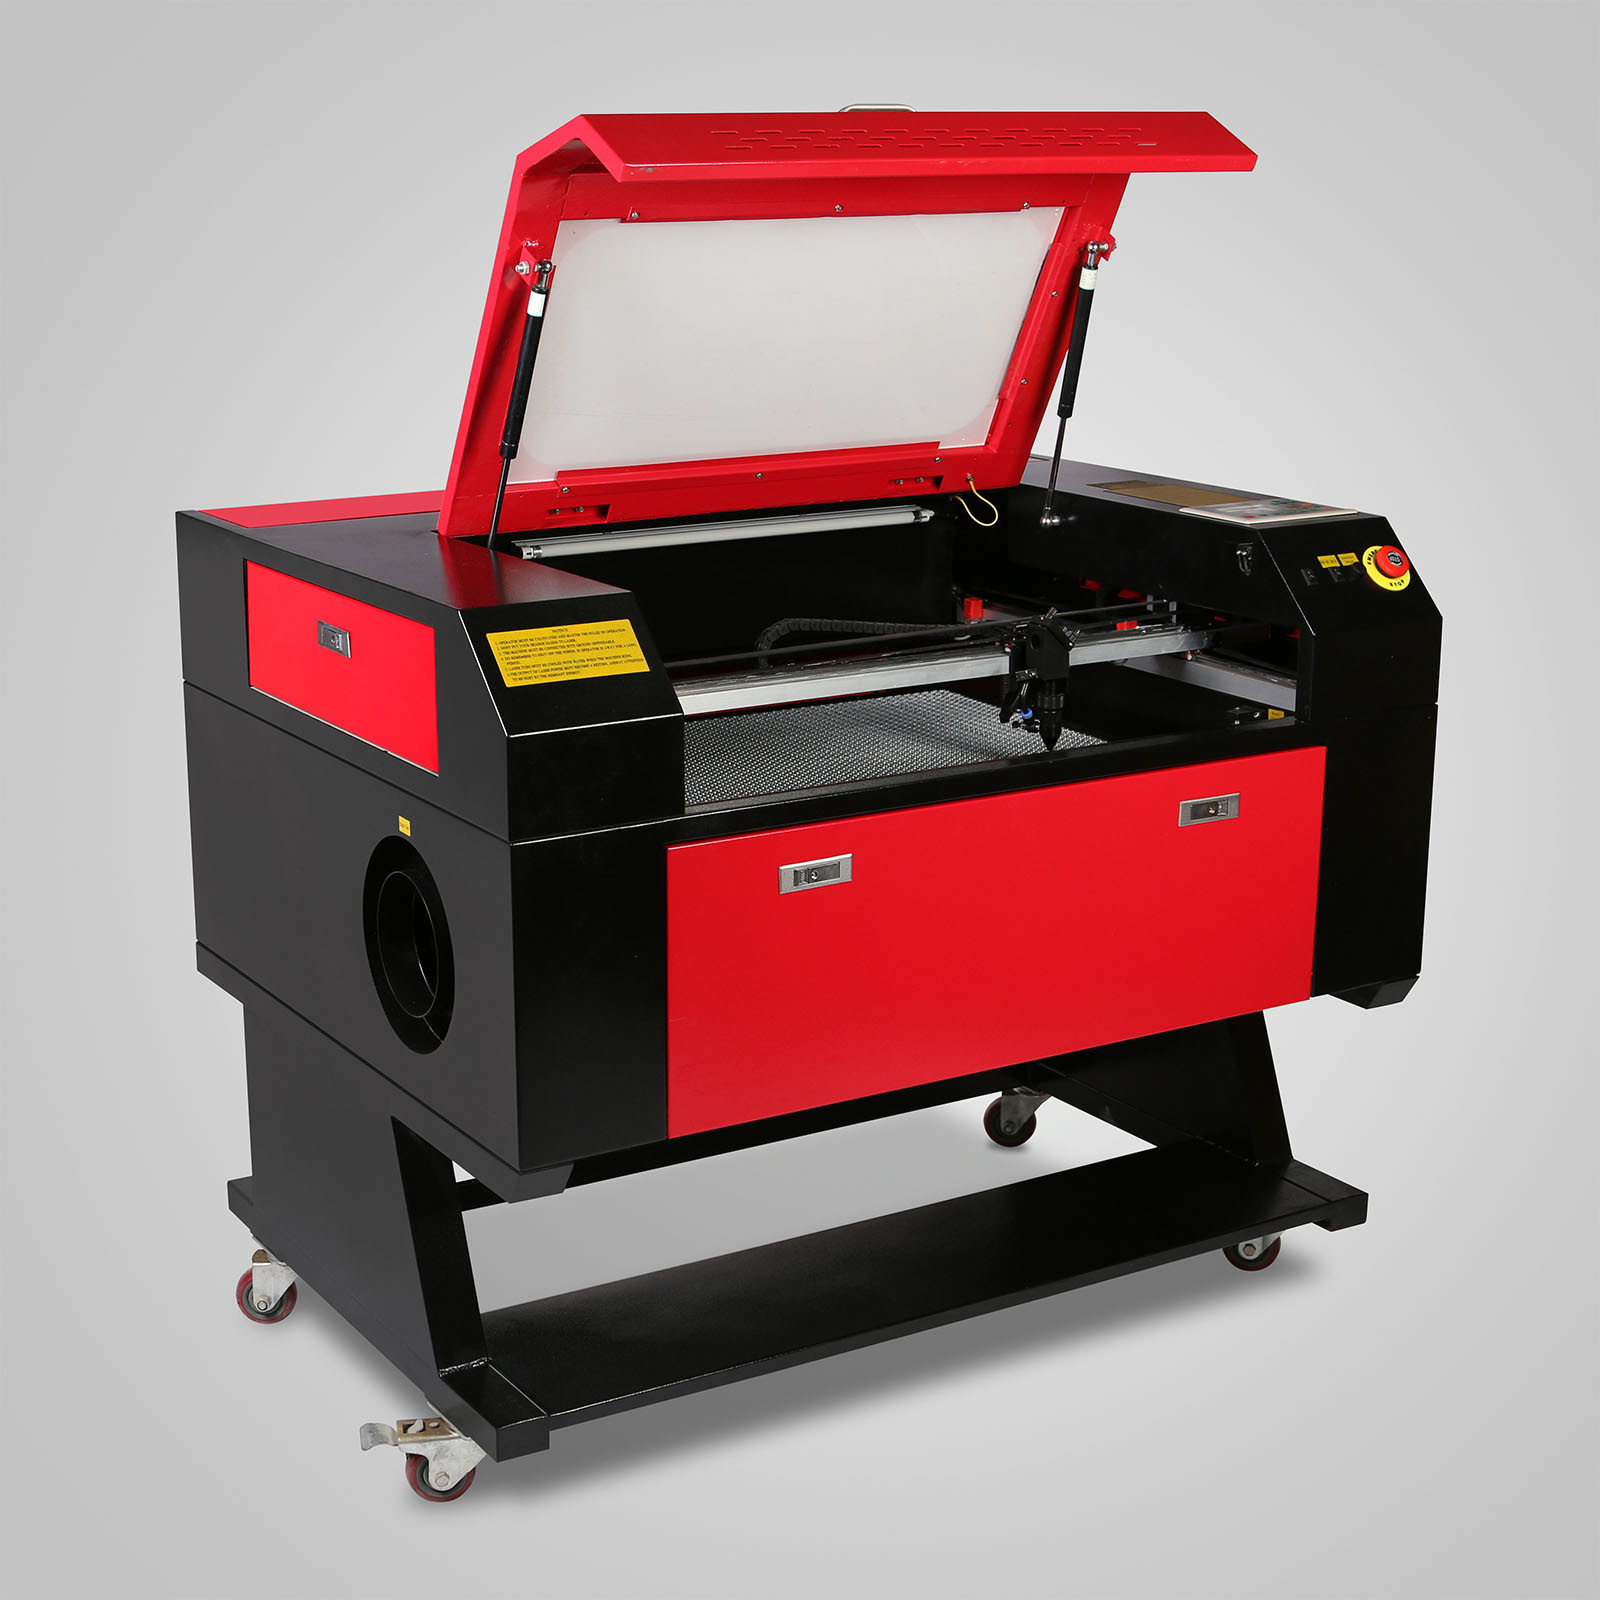 USB  CO2  Laser 60W Engraving Cutting Machine 700x500mm Engraver Cutter Wood Working